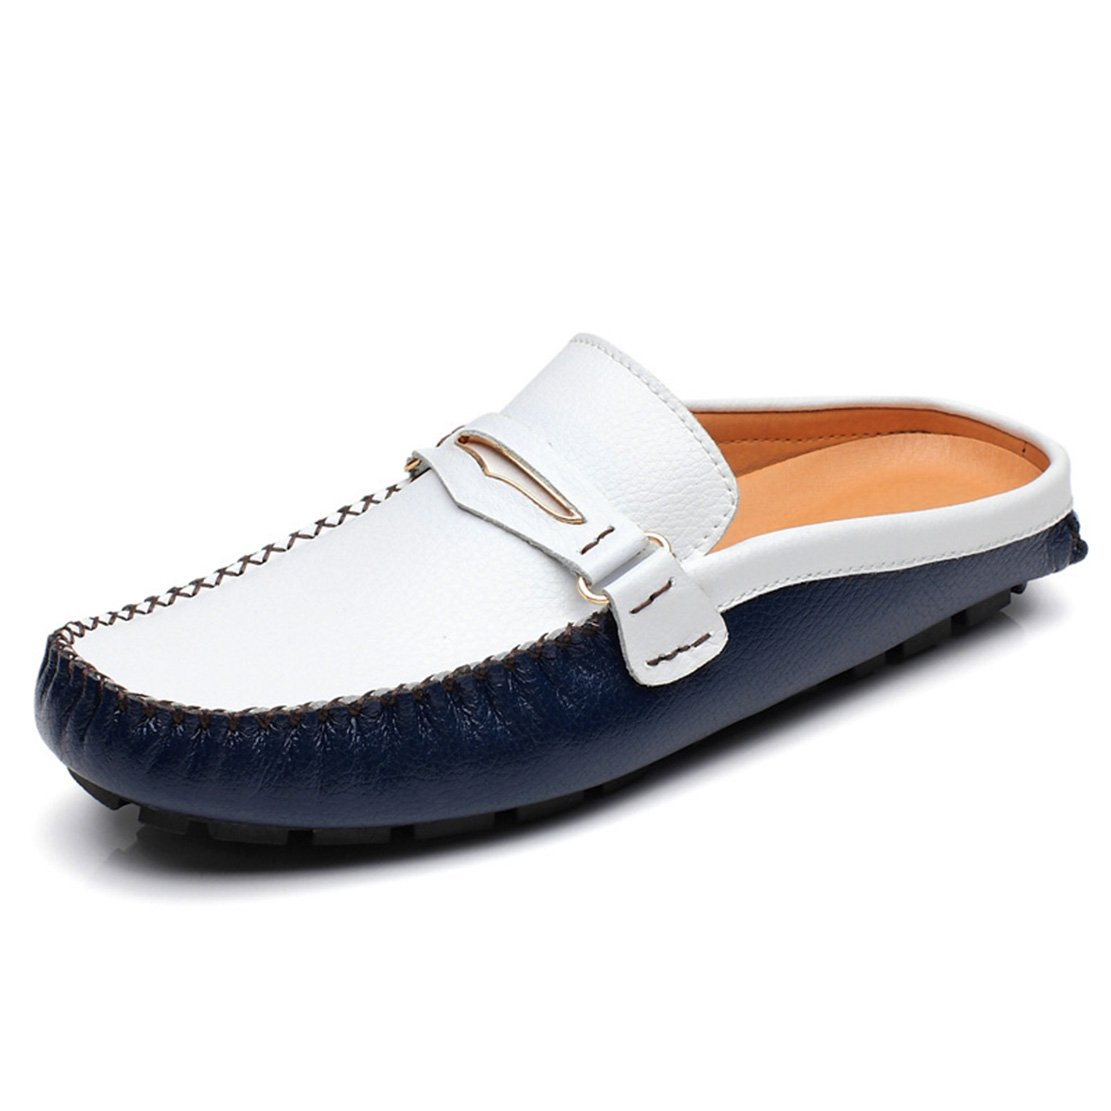 Go Tour Mens Tassels Leather Mule Slip-on Backless Slippers Shoes Blue 47